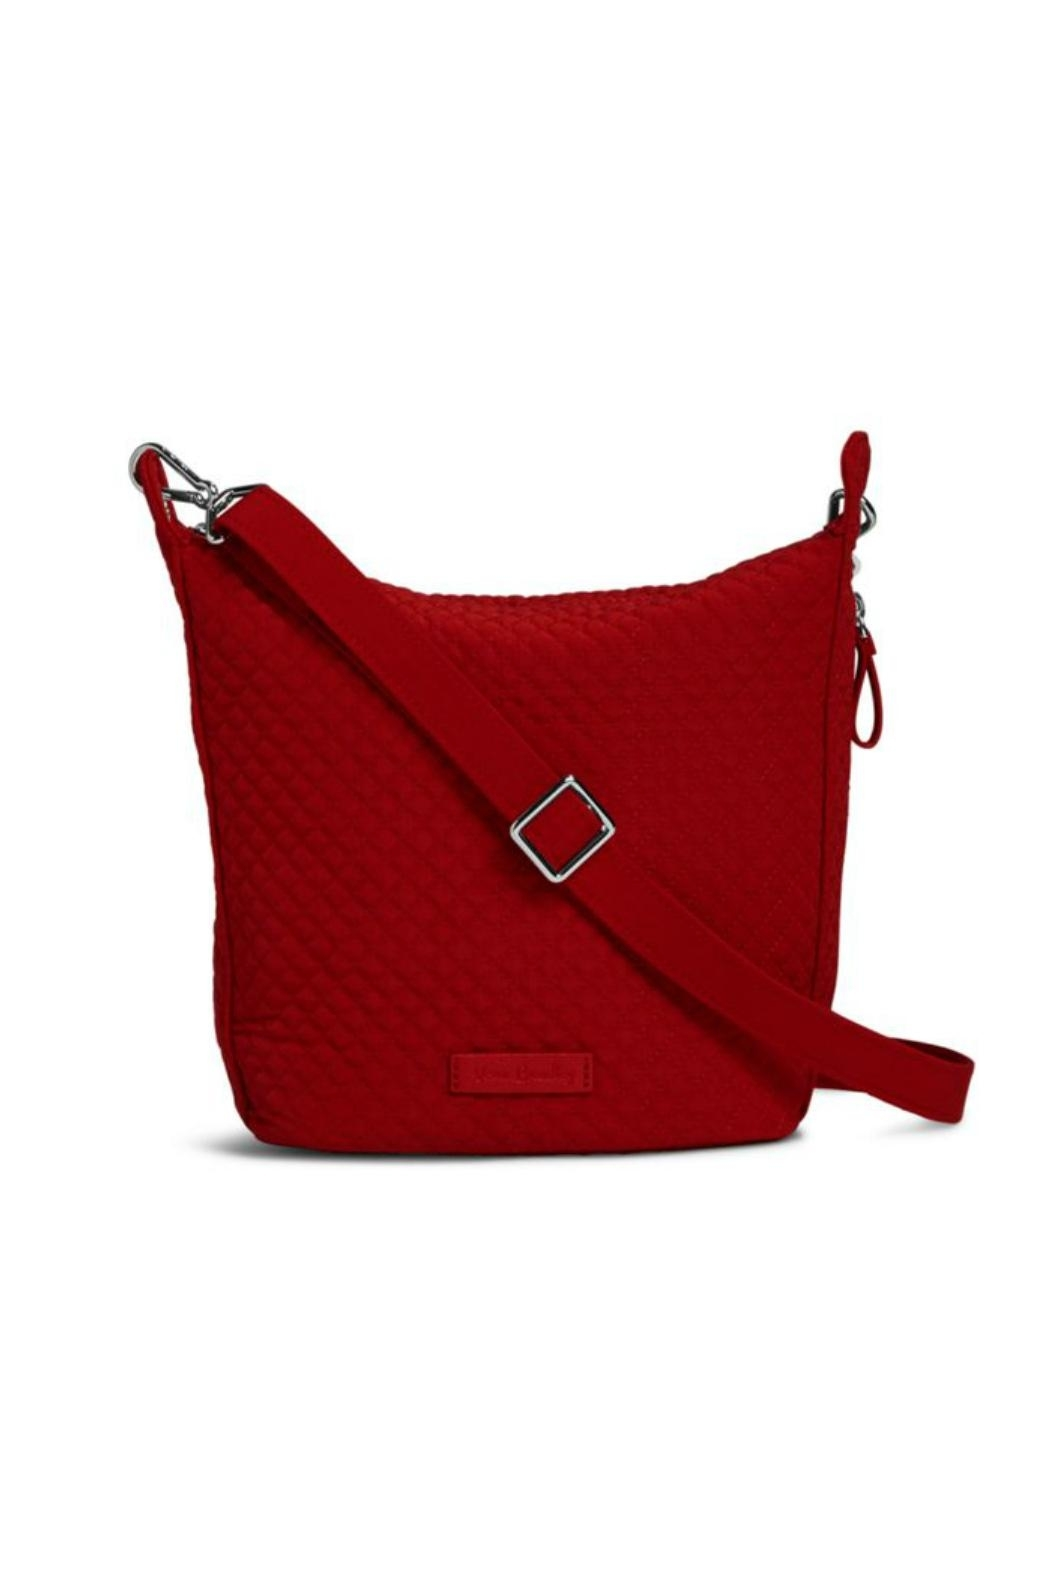 Vera Bradley Cardinal Red Carson-Mini-Hobo - Front Cropped Image